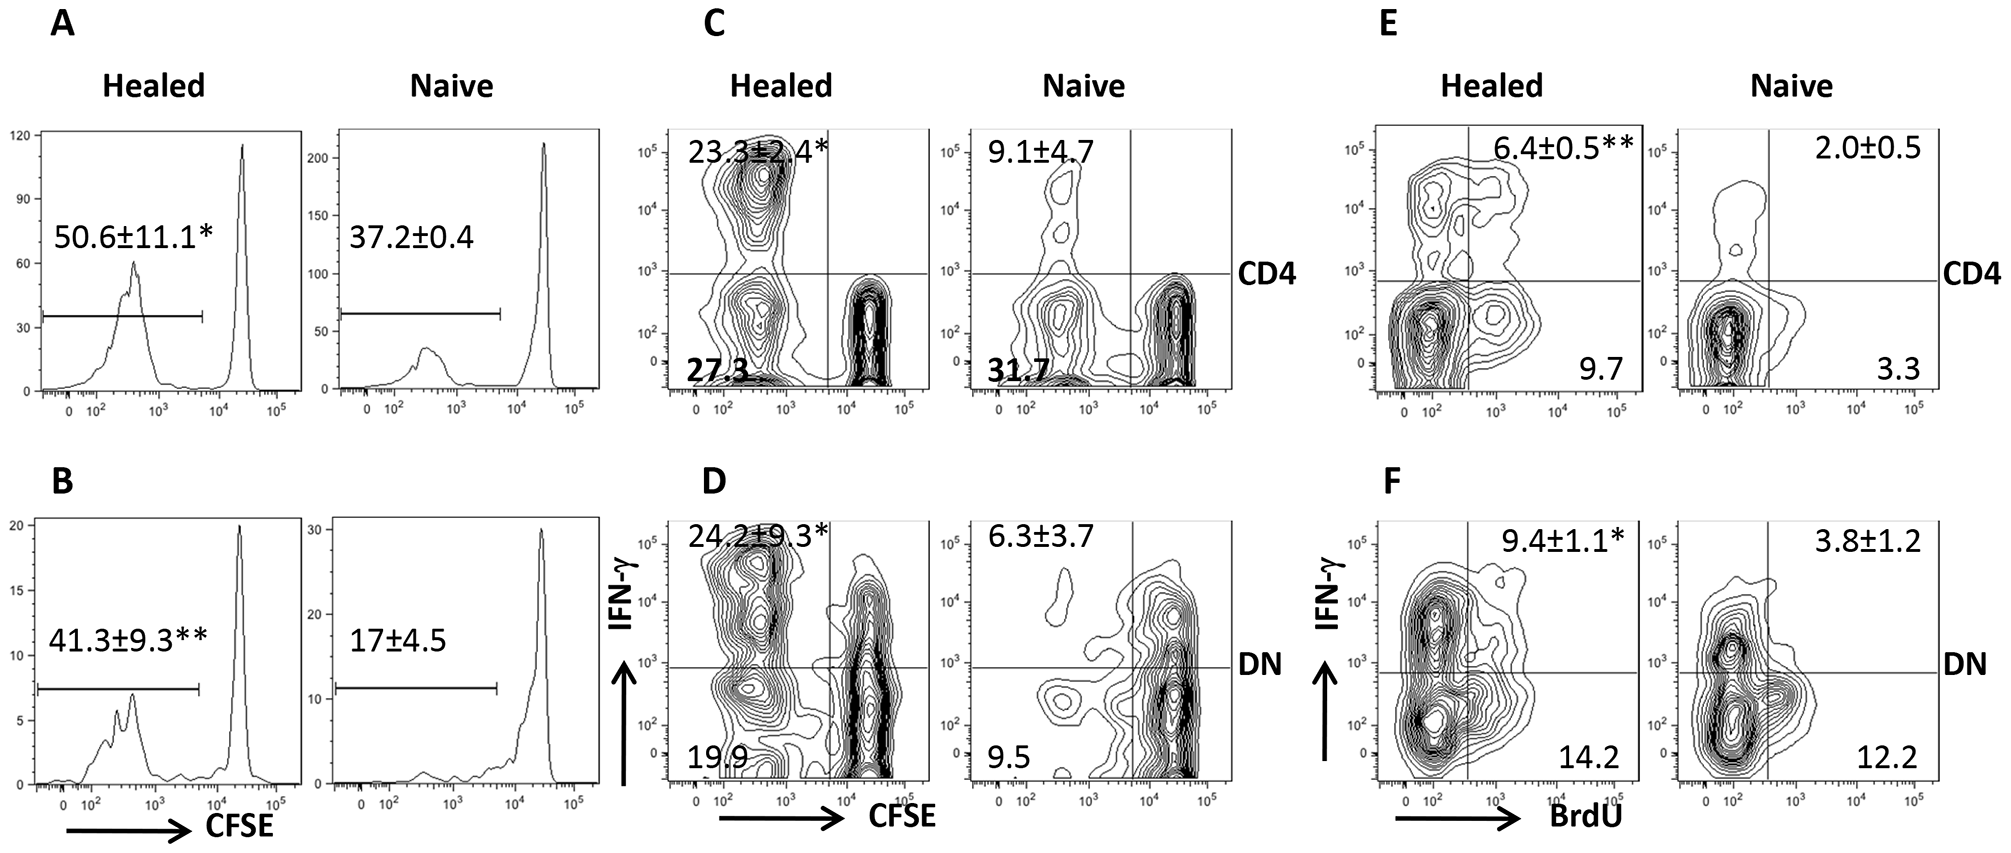 DN T cells proliferate and produce IFN-γ <i>in vivo</i>.